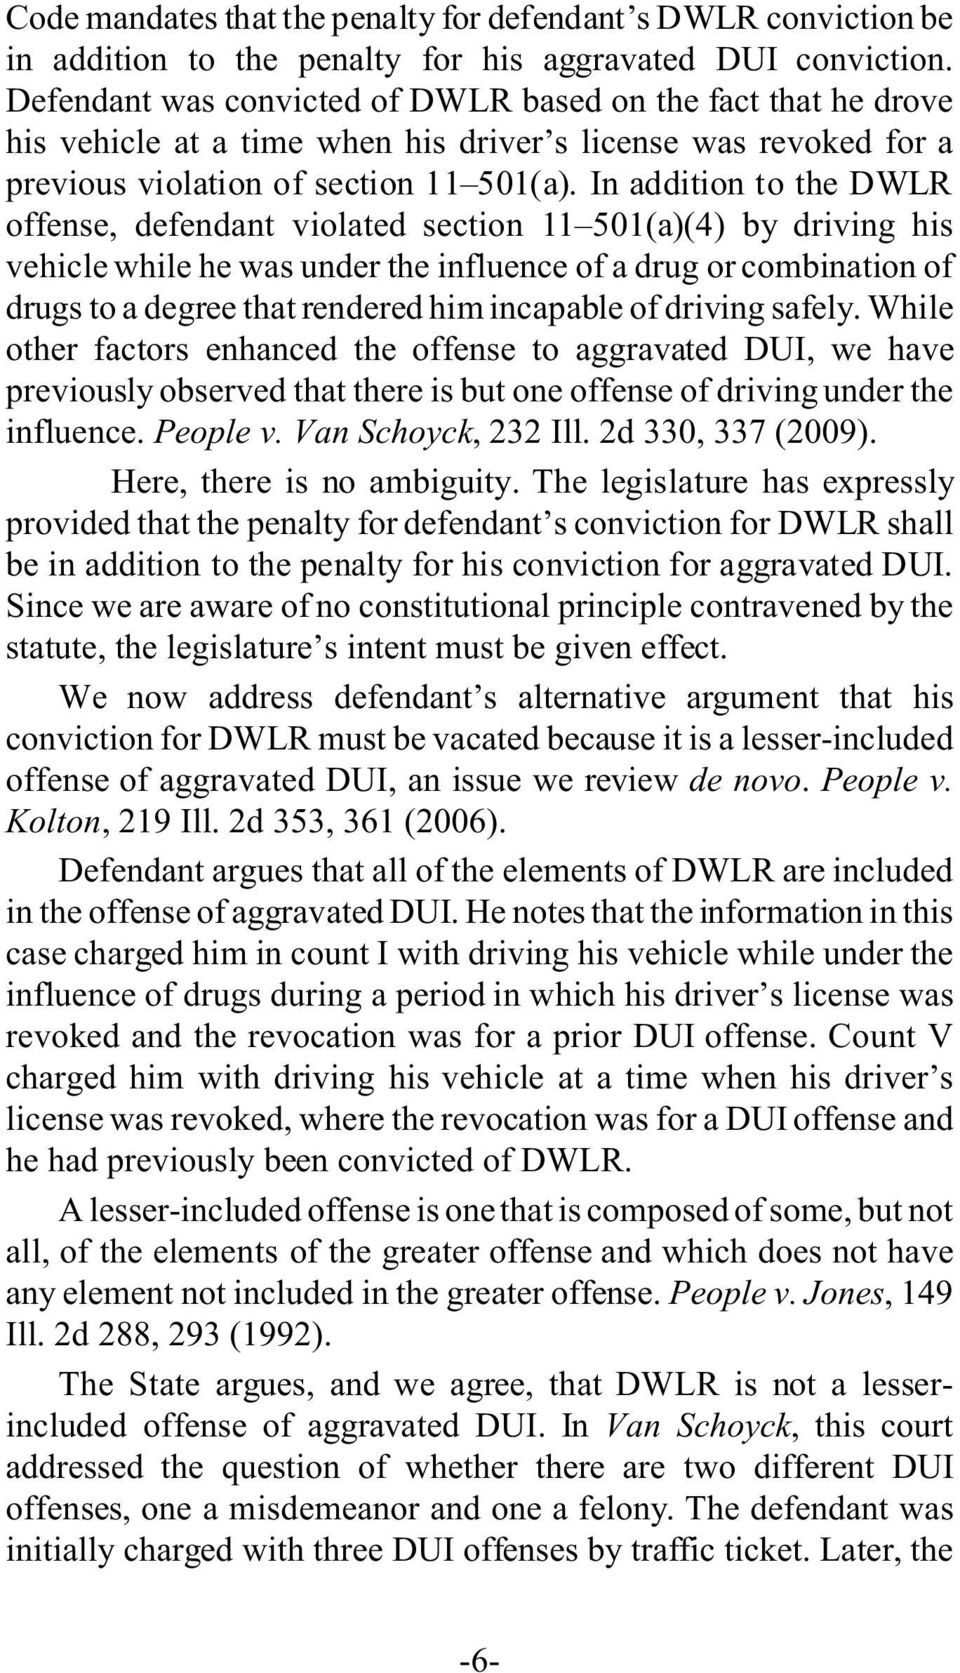 In addition to the DWLR offense, defendant violated section 11 501(a)(4) by driving his vehicle while he was under the influence of a drug or combination of drugs to a degree that rendered him